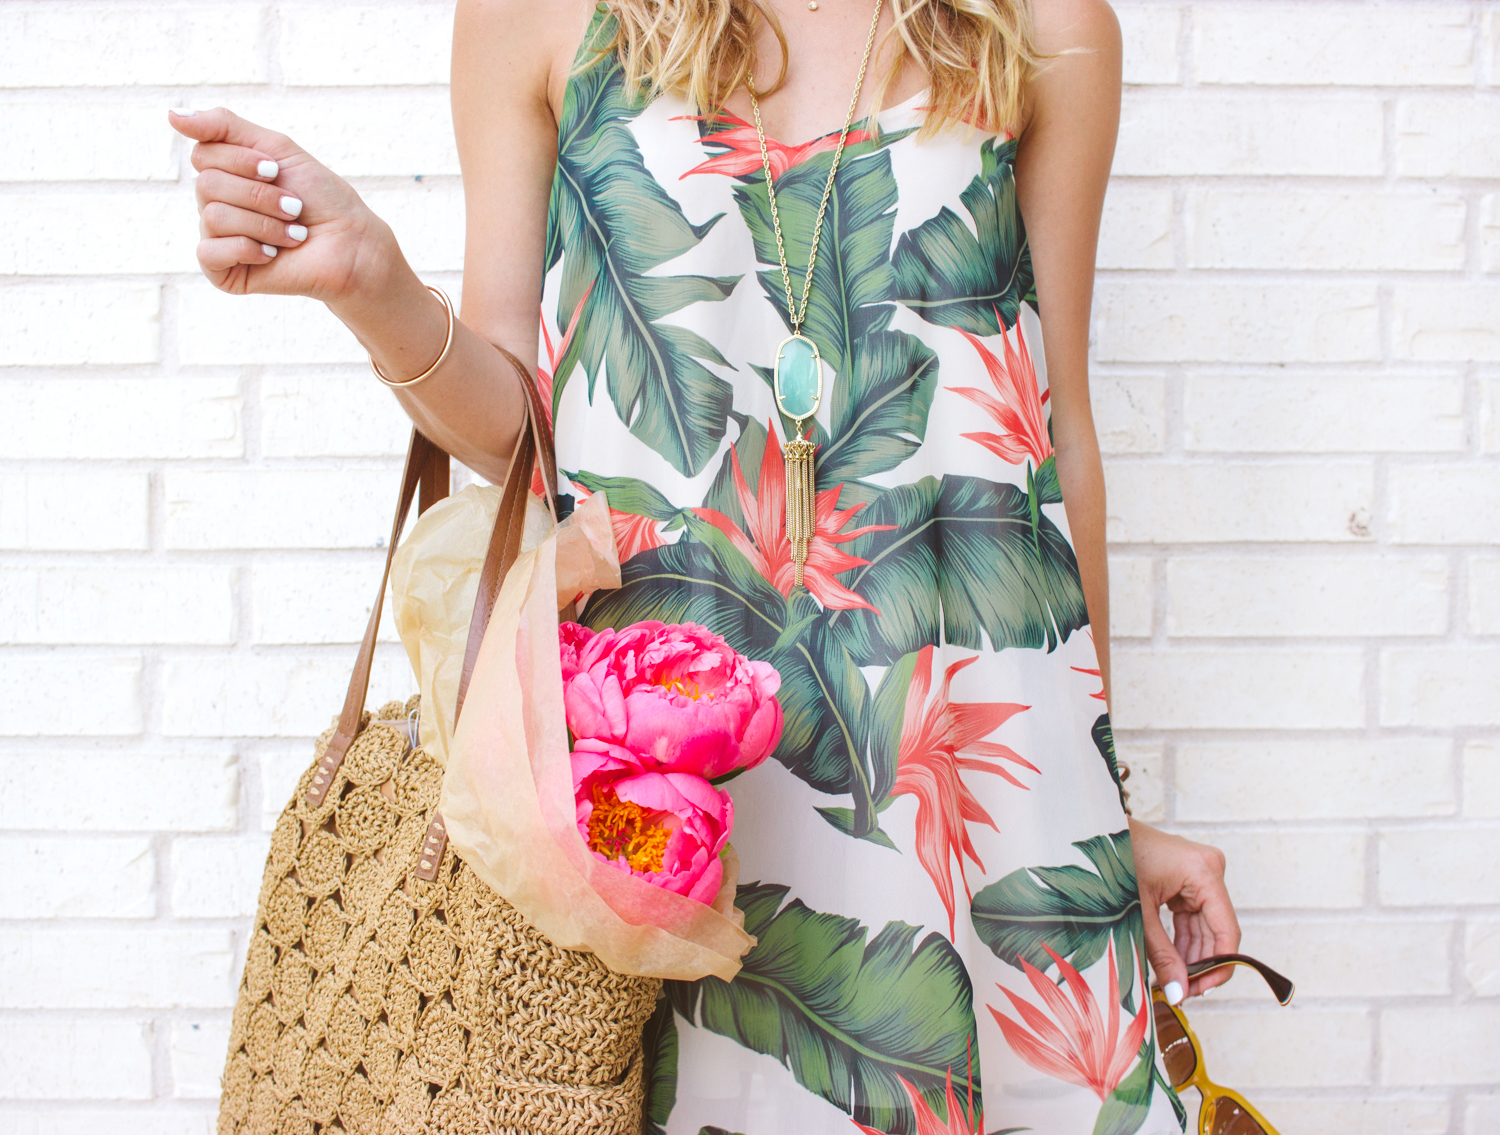 livvyland-blog-austin-texas-fashion-blogger-show-me-your-mumu-palm-print-circus-mini-dress-summer-outfit-colorful-7